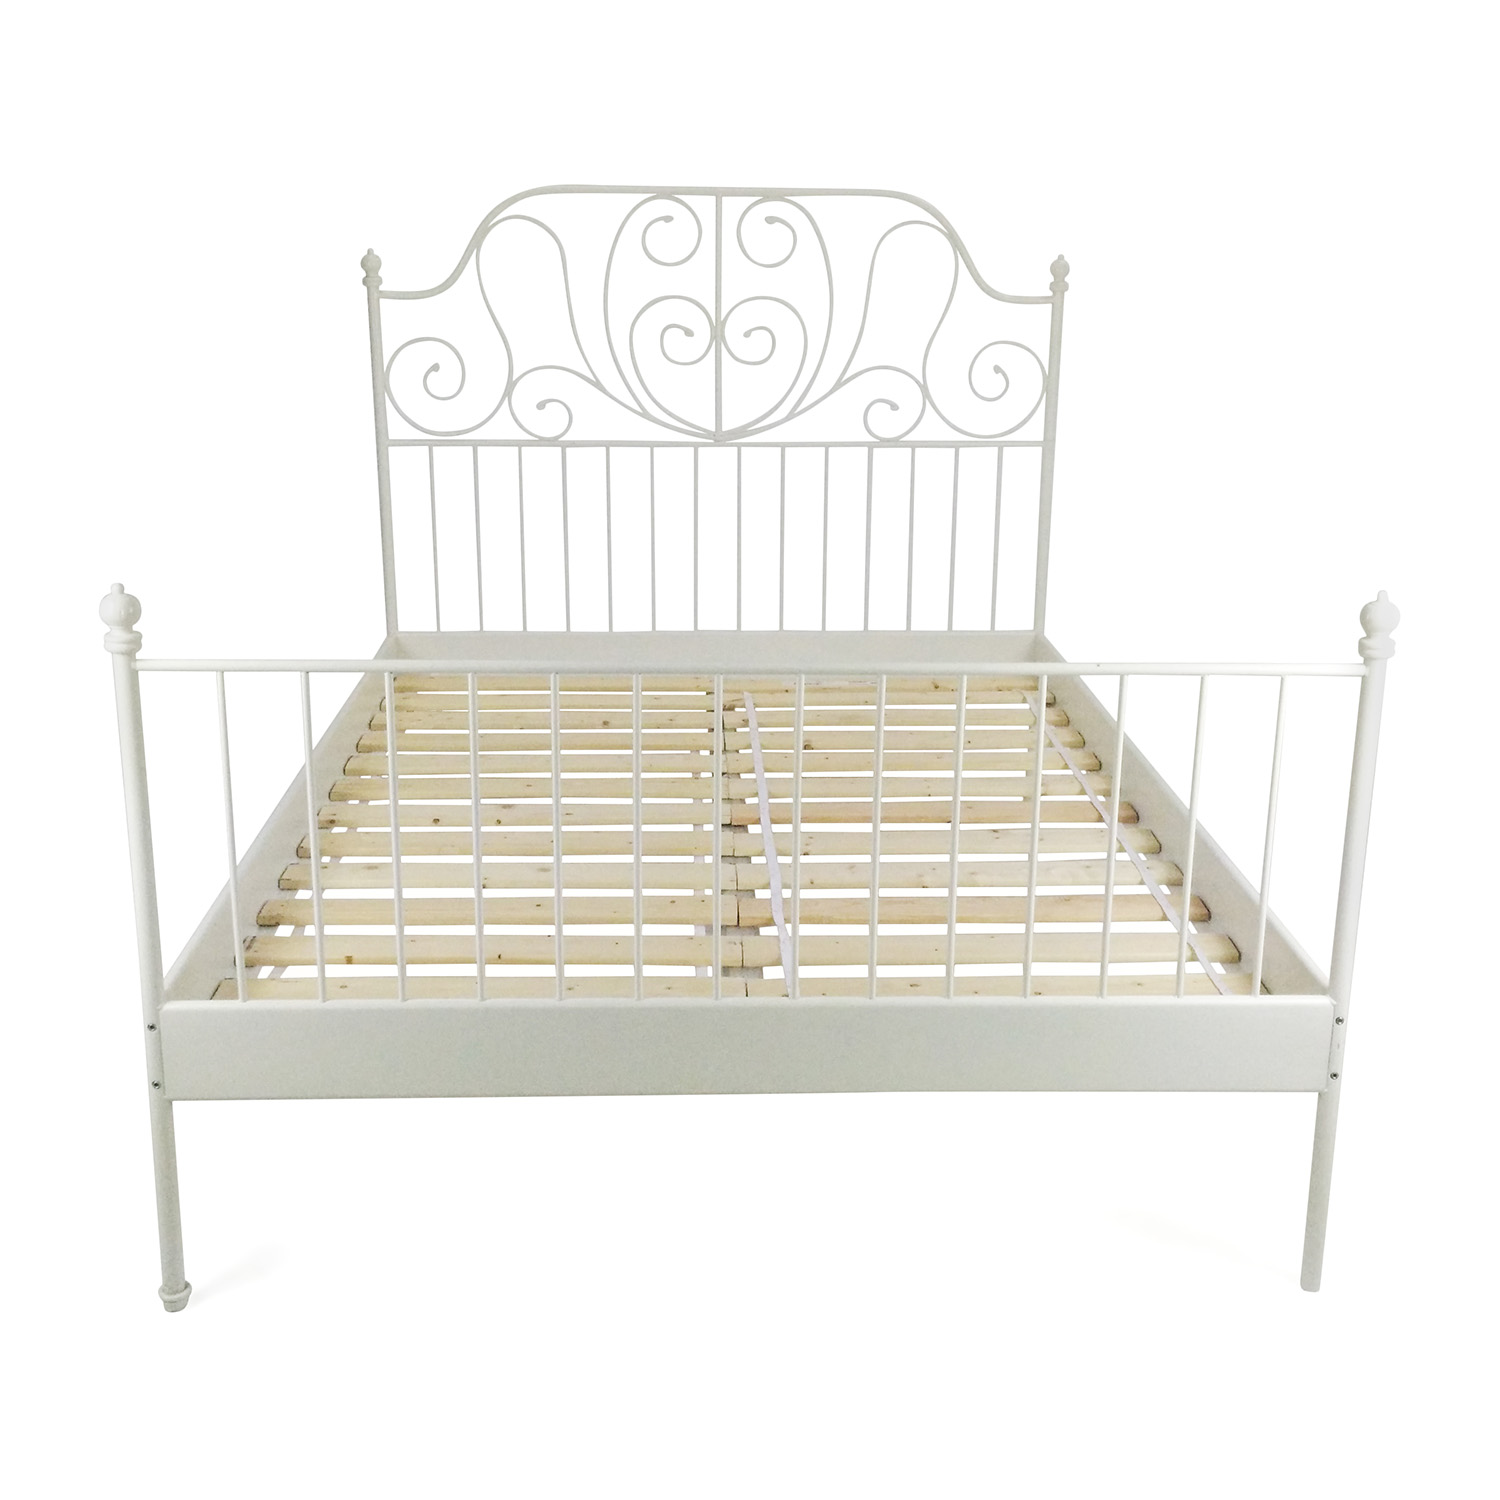 e89b1dffe0c 70% OFF - IKEA IKEA Queen Sized Iron Bed Frame   Beds